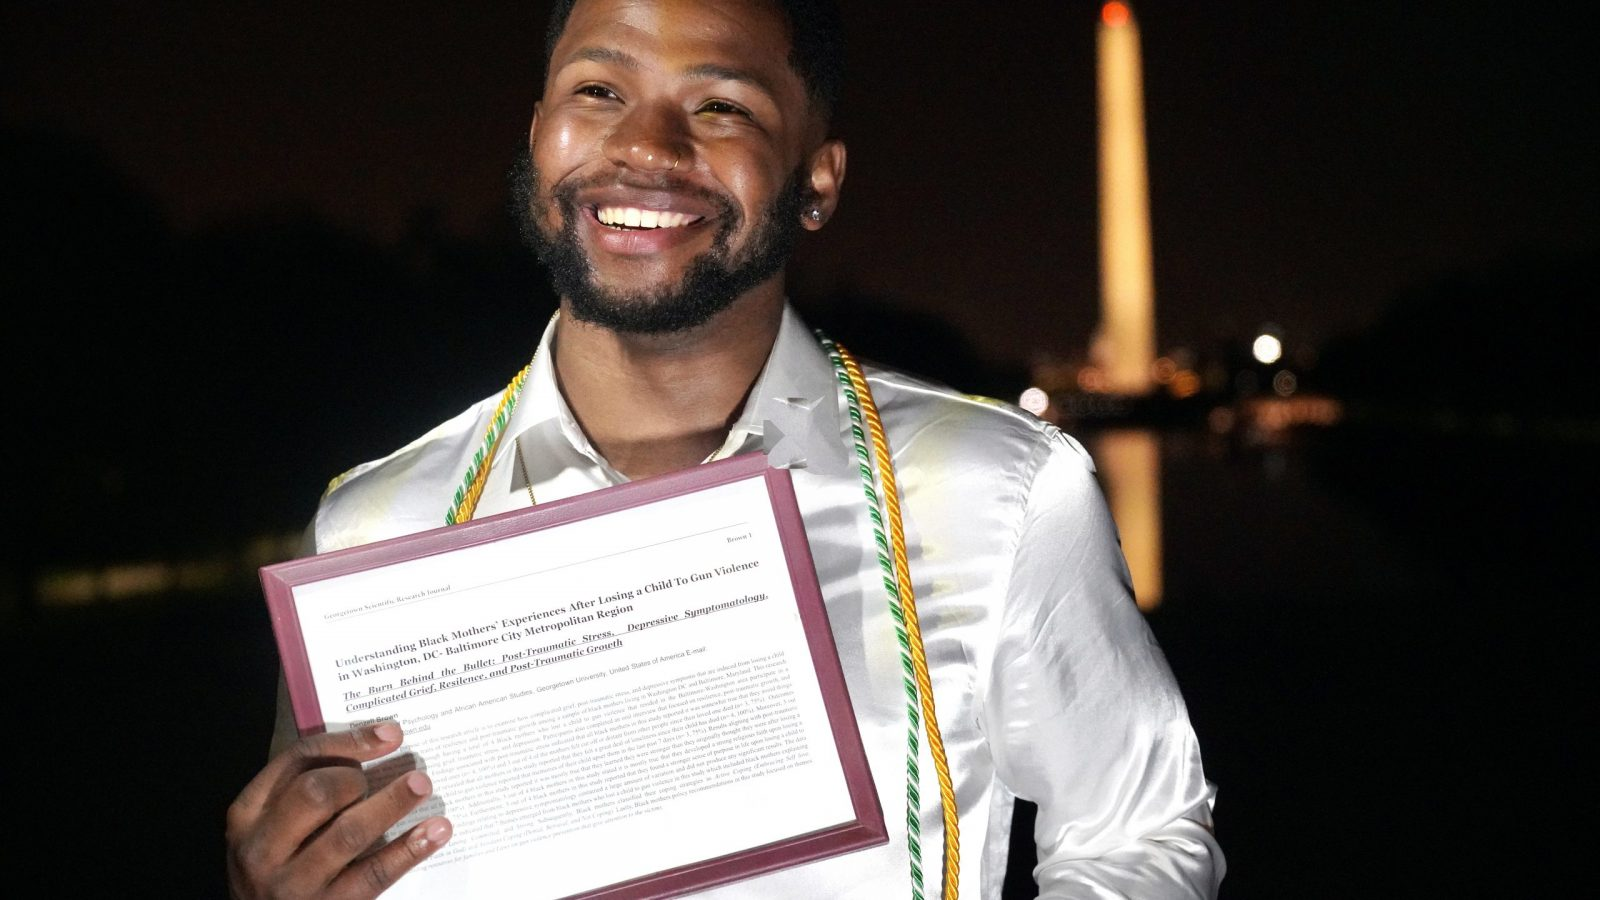 Denzell Brown holds his research in front of Washington Monument at night